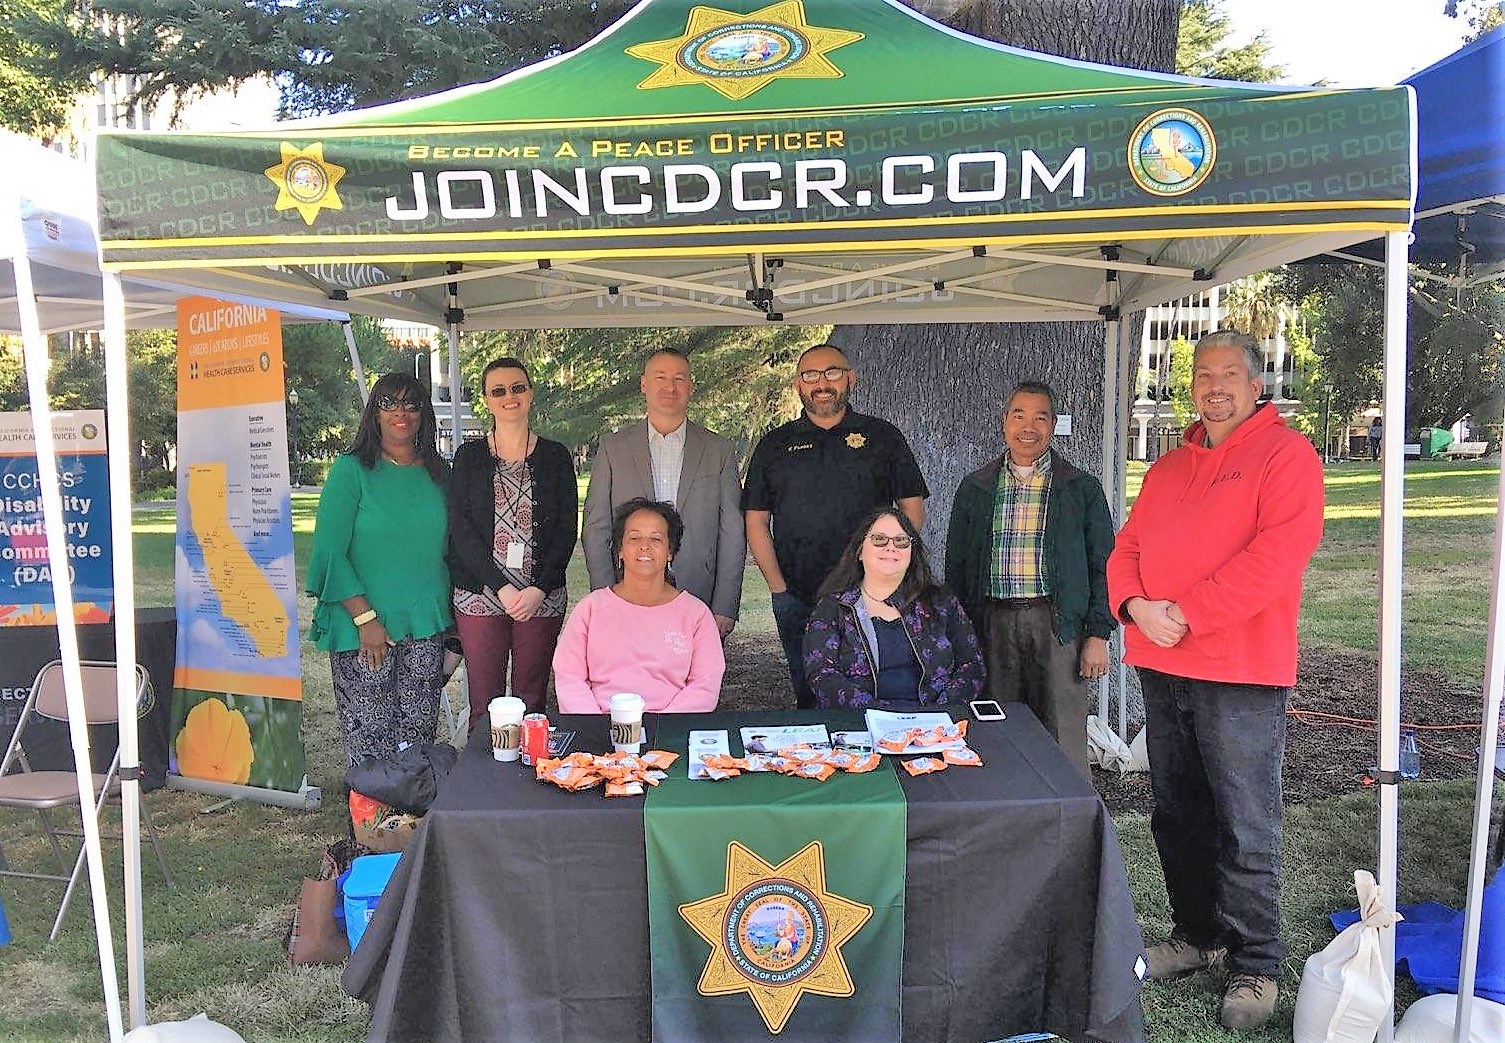 People stand under a shade cover that has the CDCR logo and the words JoinCDCR.com.